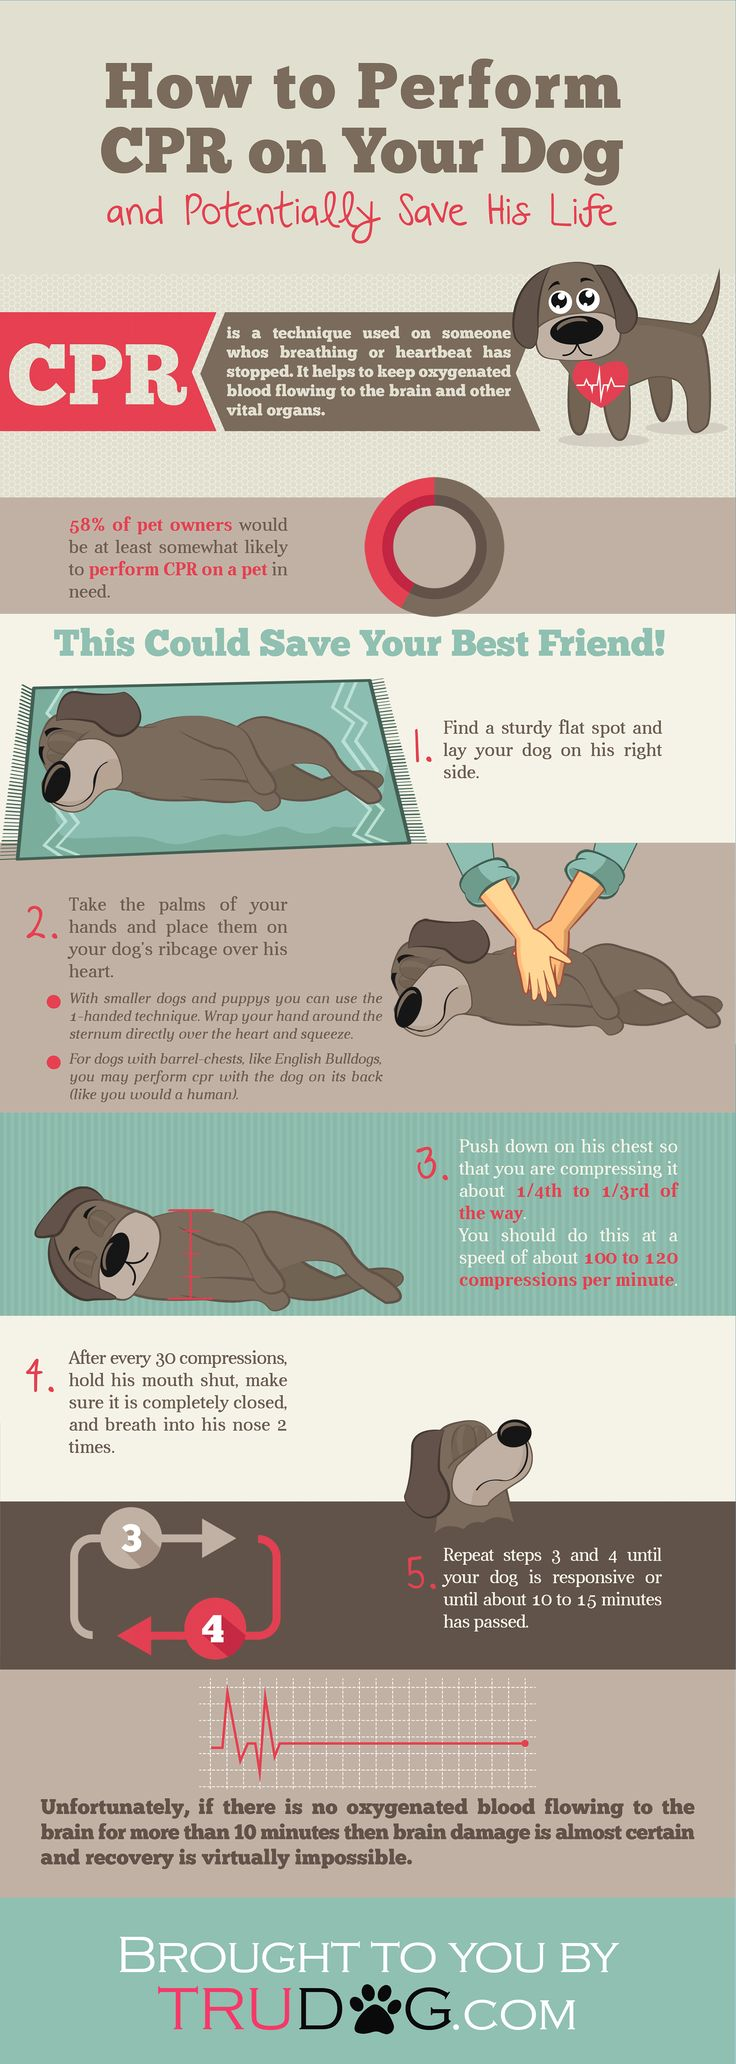 How to Perform CPR on Your Dog #petsafety #dogs #CPR